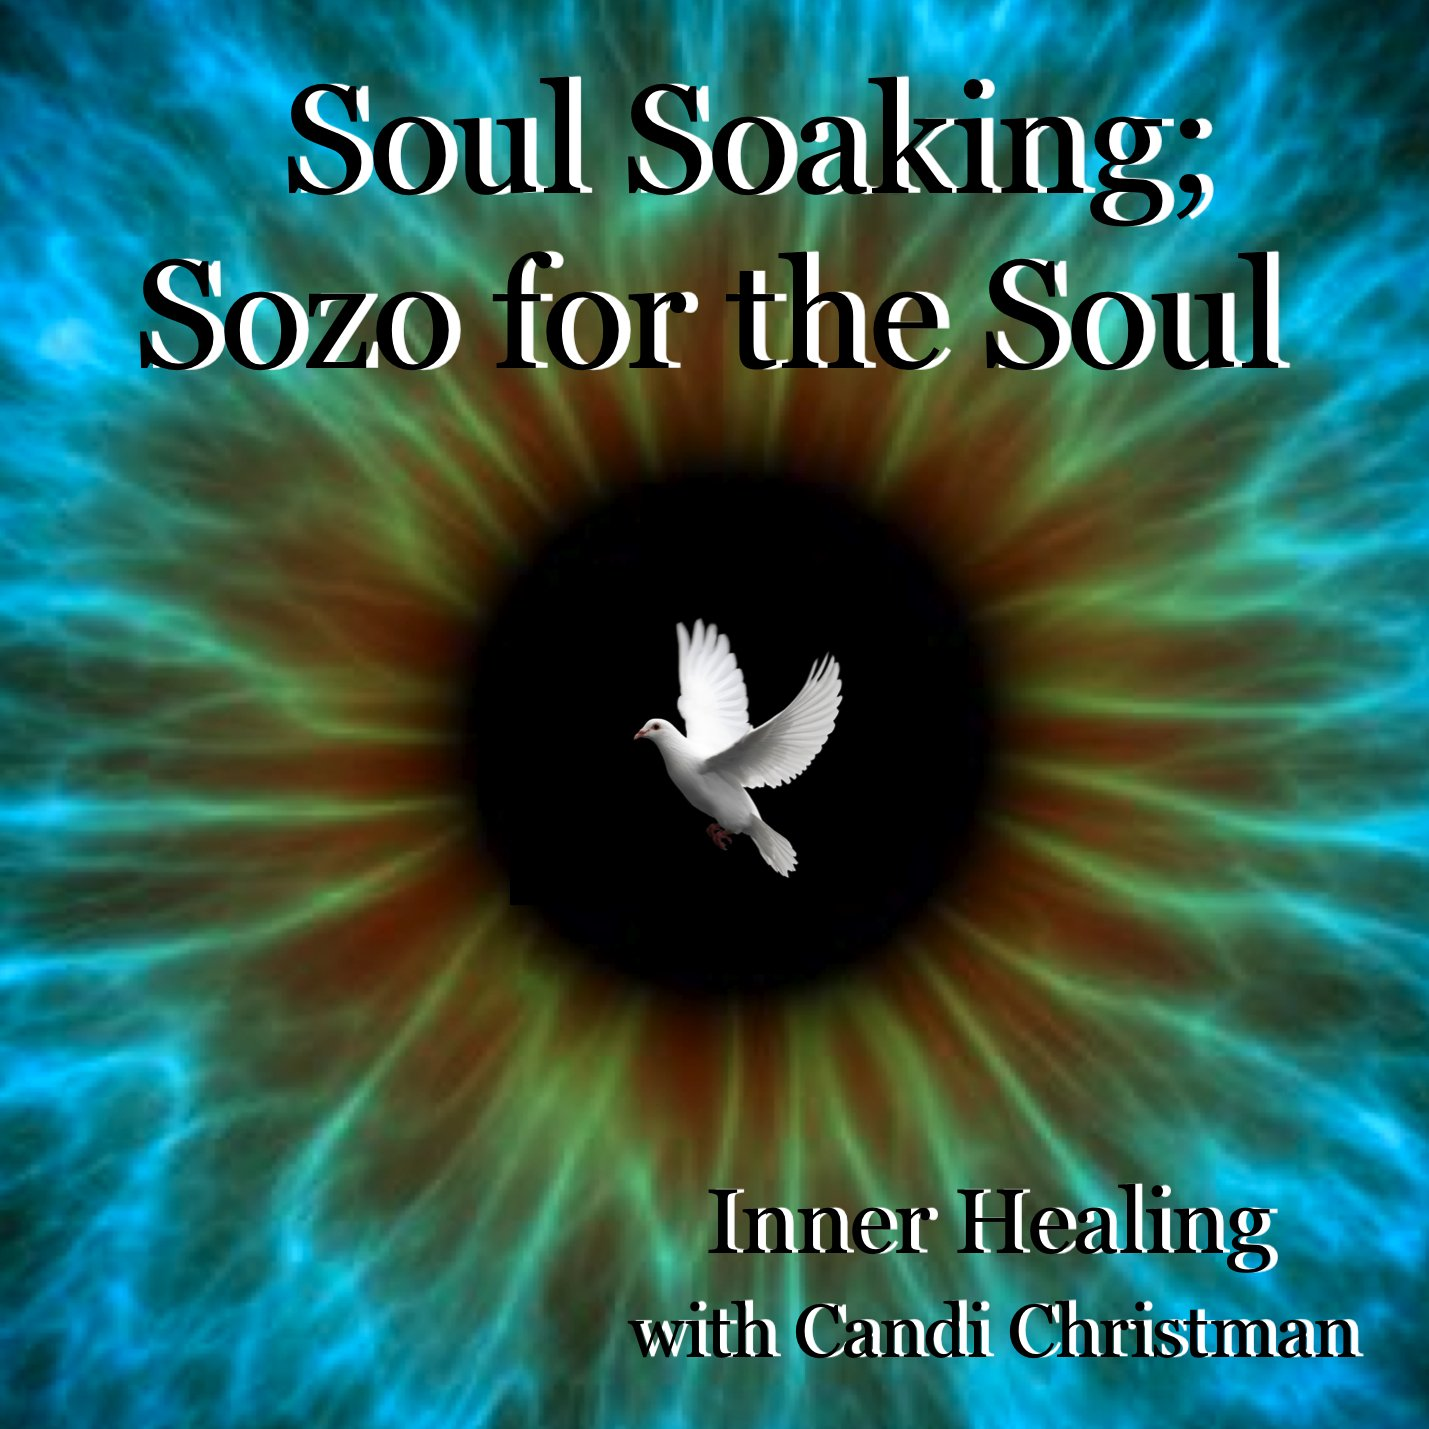 Christian Meditation & Soaking Music Soul Soaking - Sozo: promotes  wholeness of mind, soul and body through the ministry of the Holy Spirit   Guided